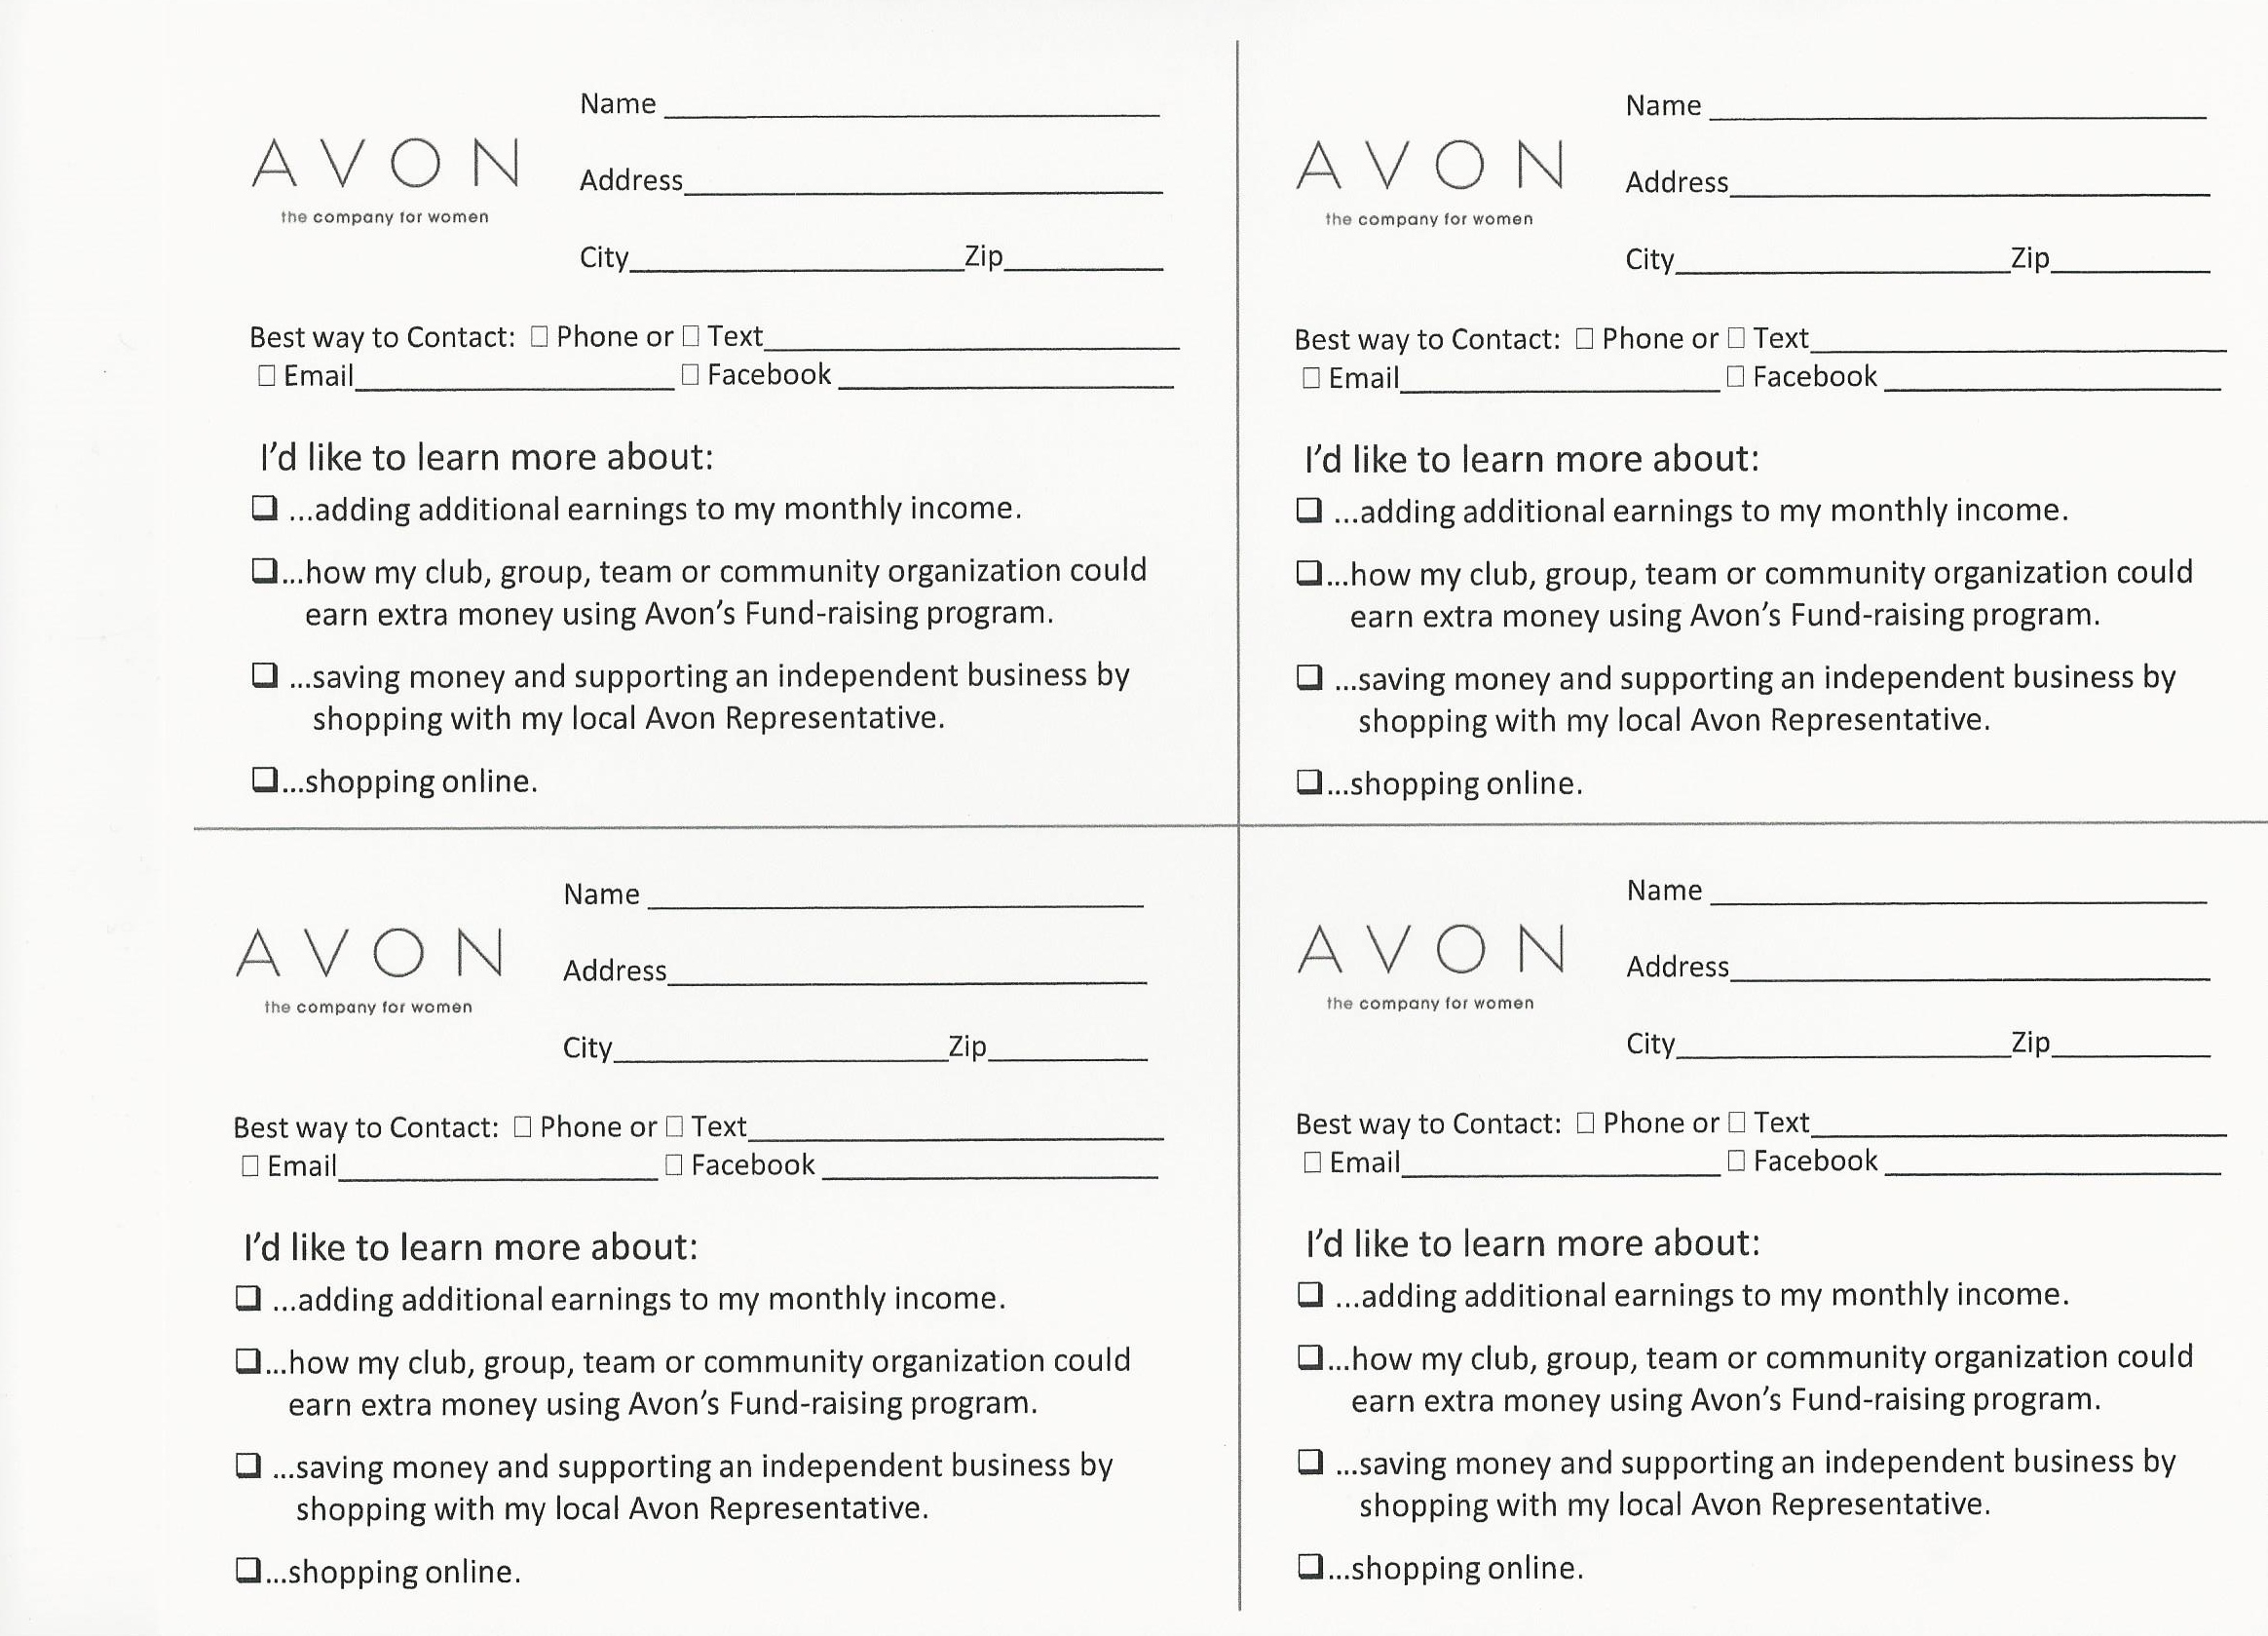 Avon Flyers & Charts | Avon Beauty - Free Printable Avon Flyers